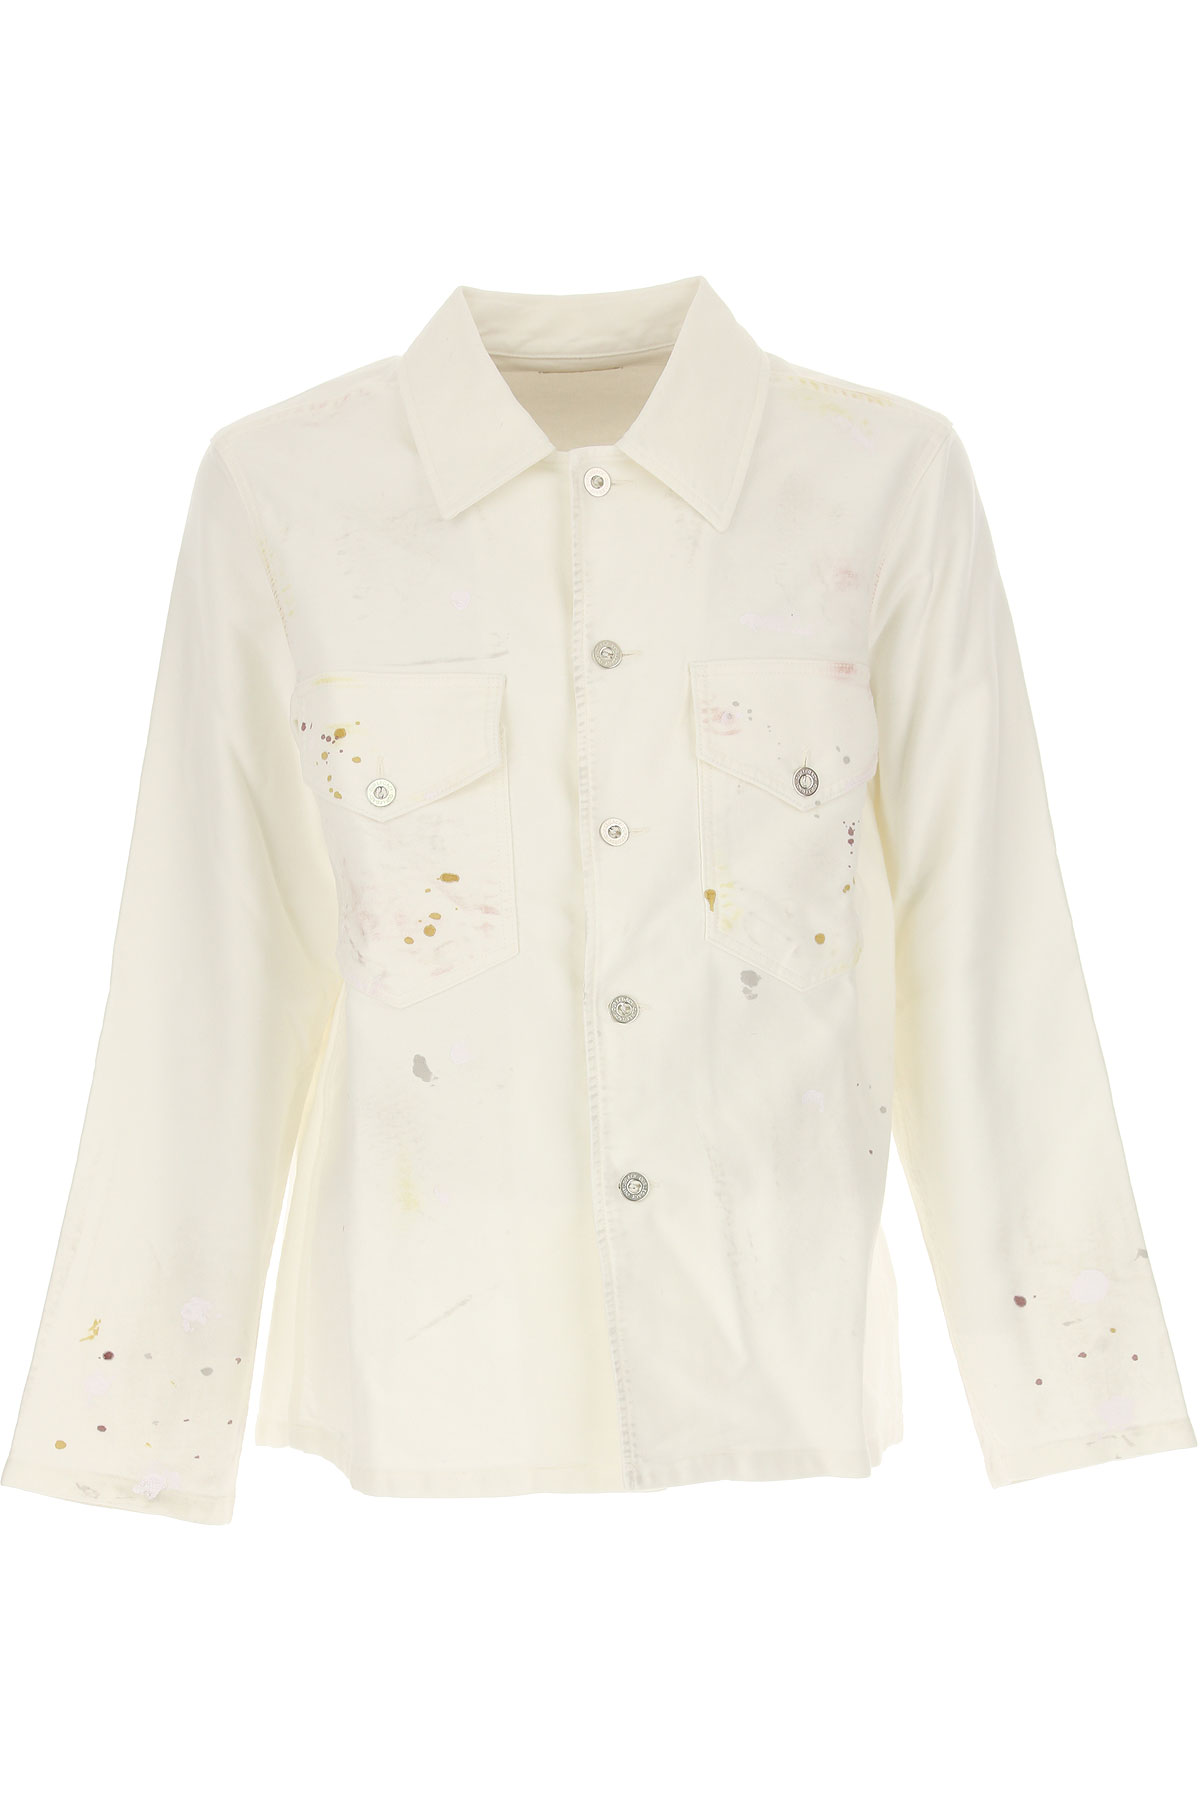 Image of Our Legacy Jacket for Men, White, Cotton, 2017, L M XL